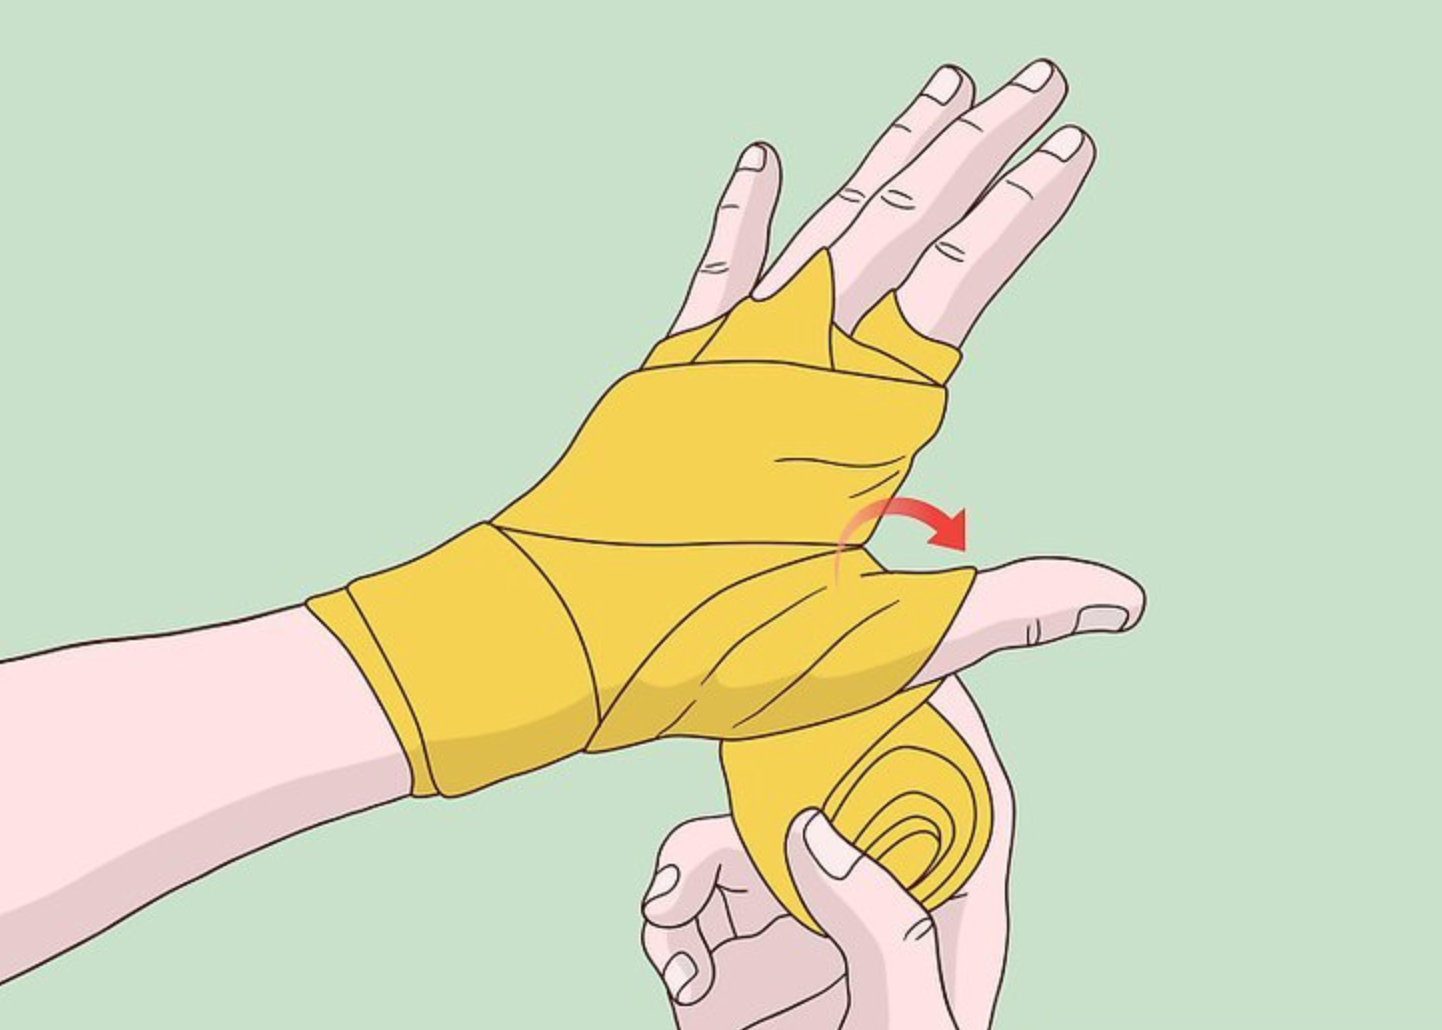 Remember to wrap your thumb up once.